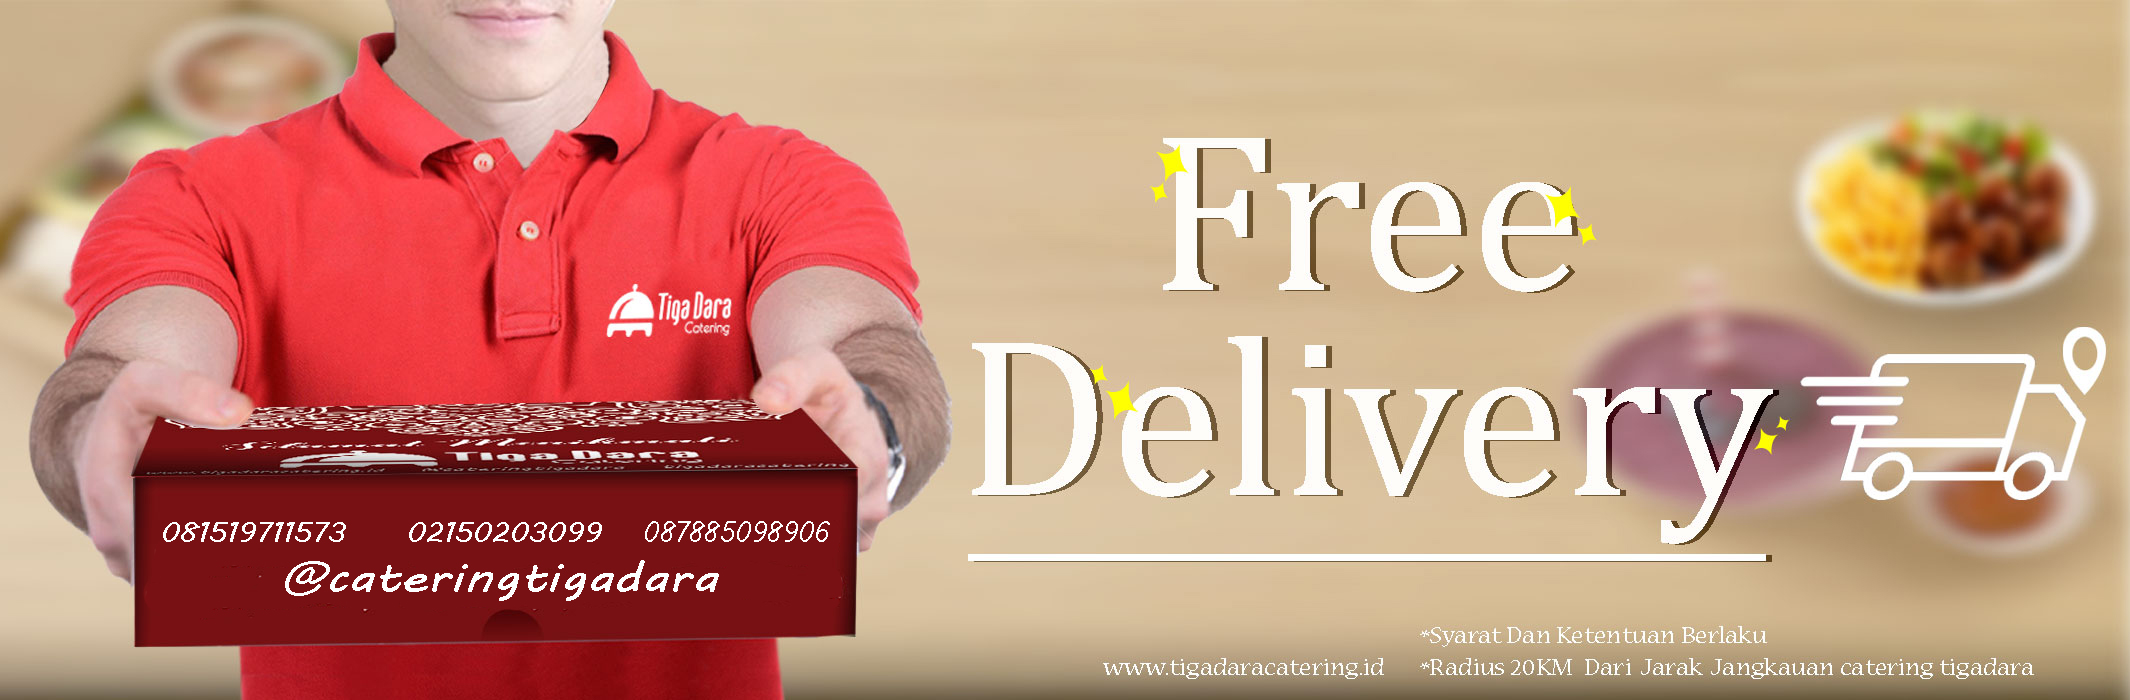 catering_murah_free_delivery